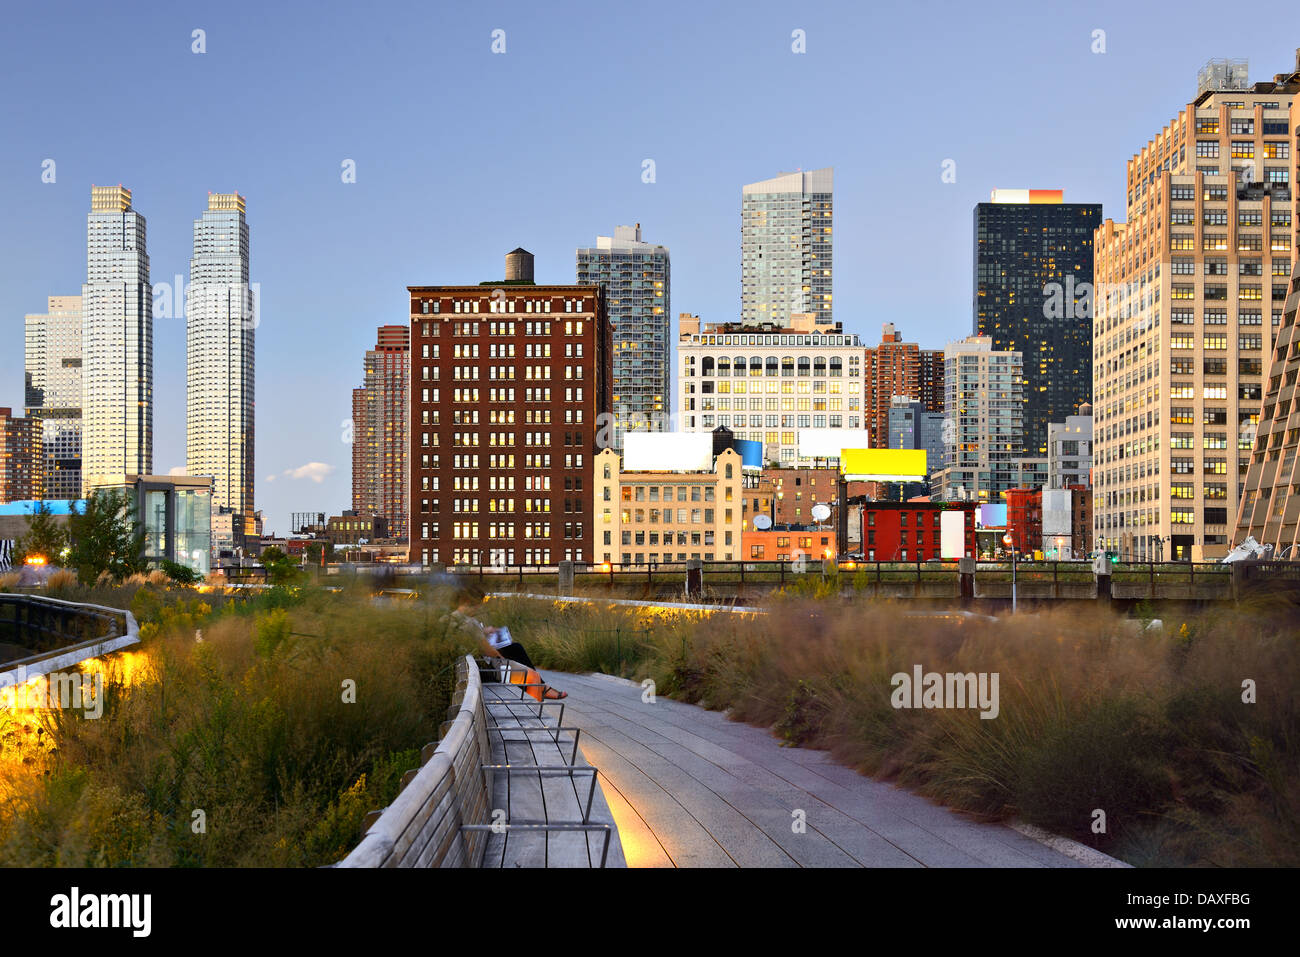 New York City High Line at night in New York City. - Stock Image